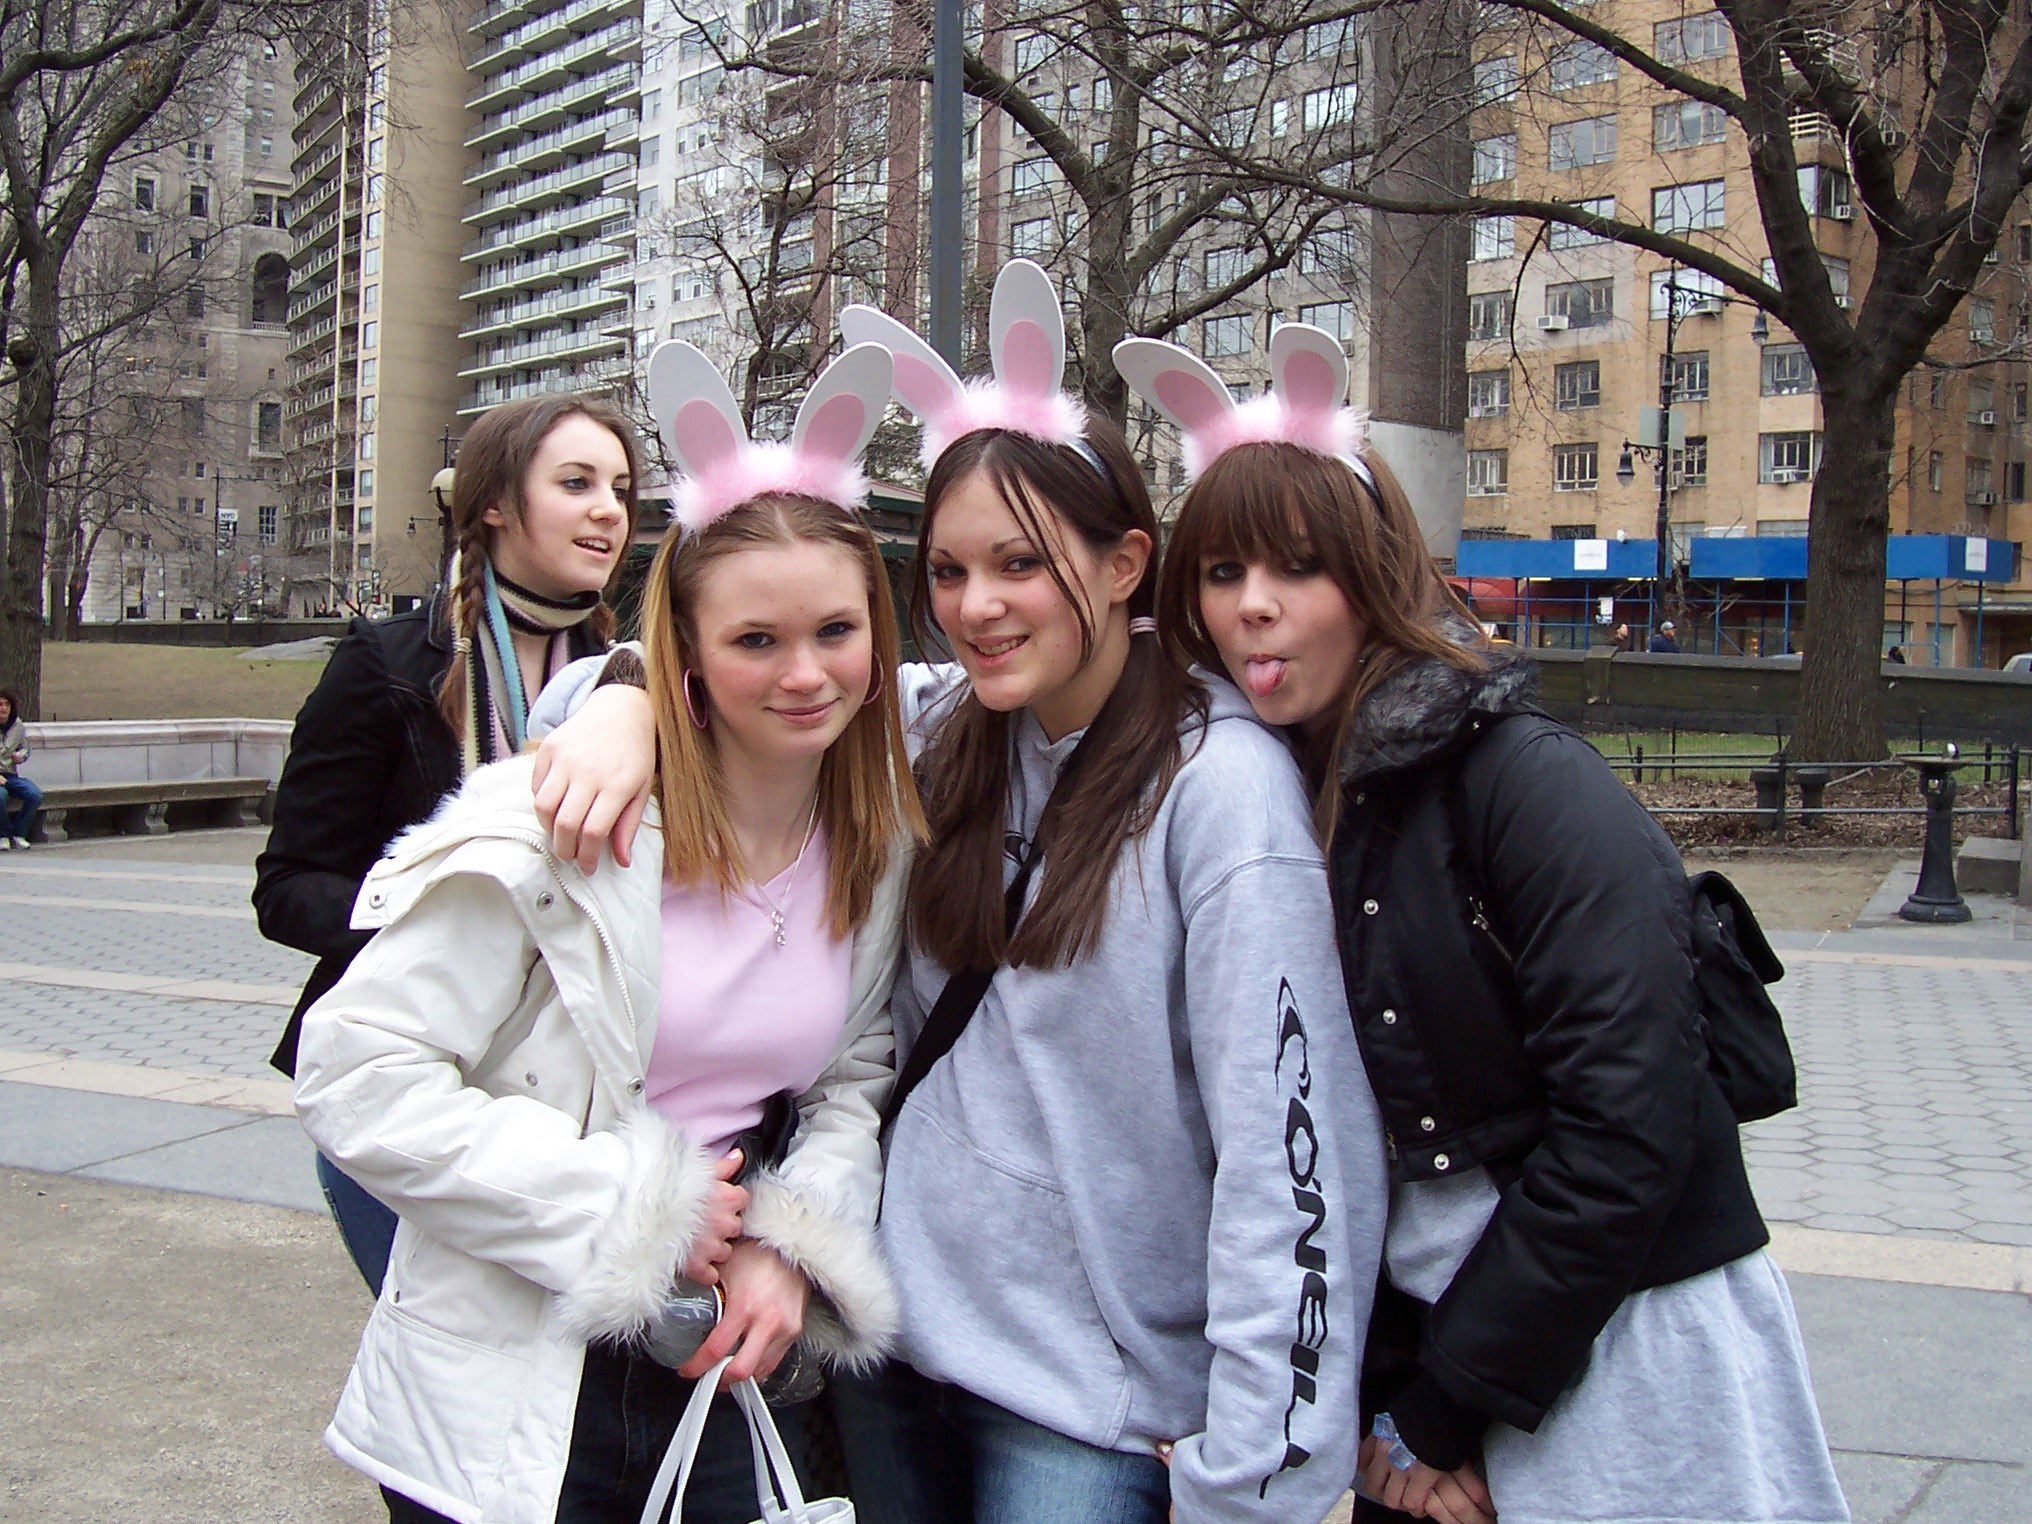 Easter bunnies in NYC